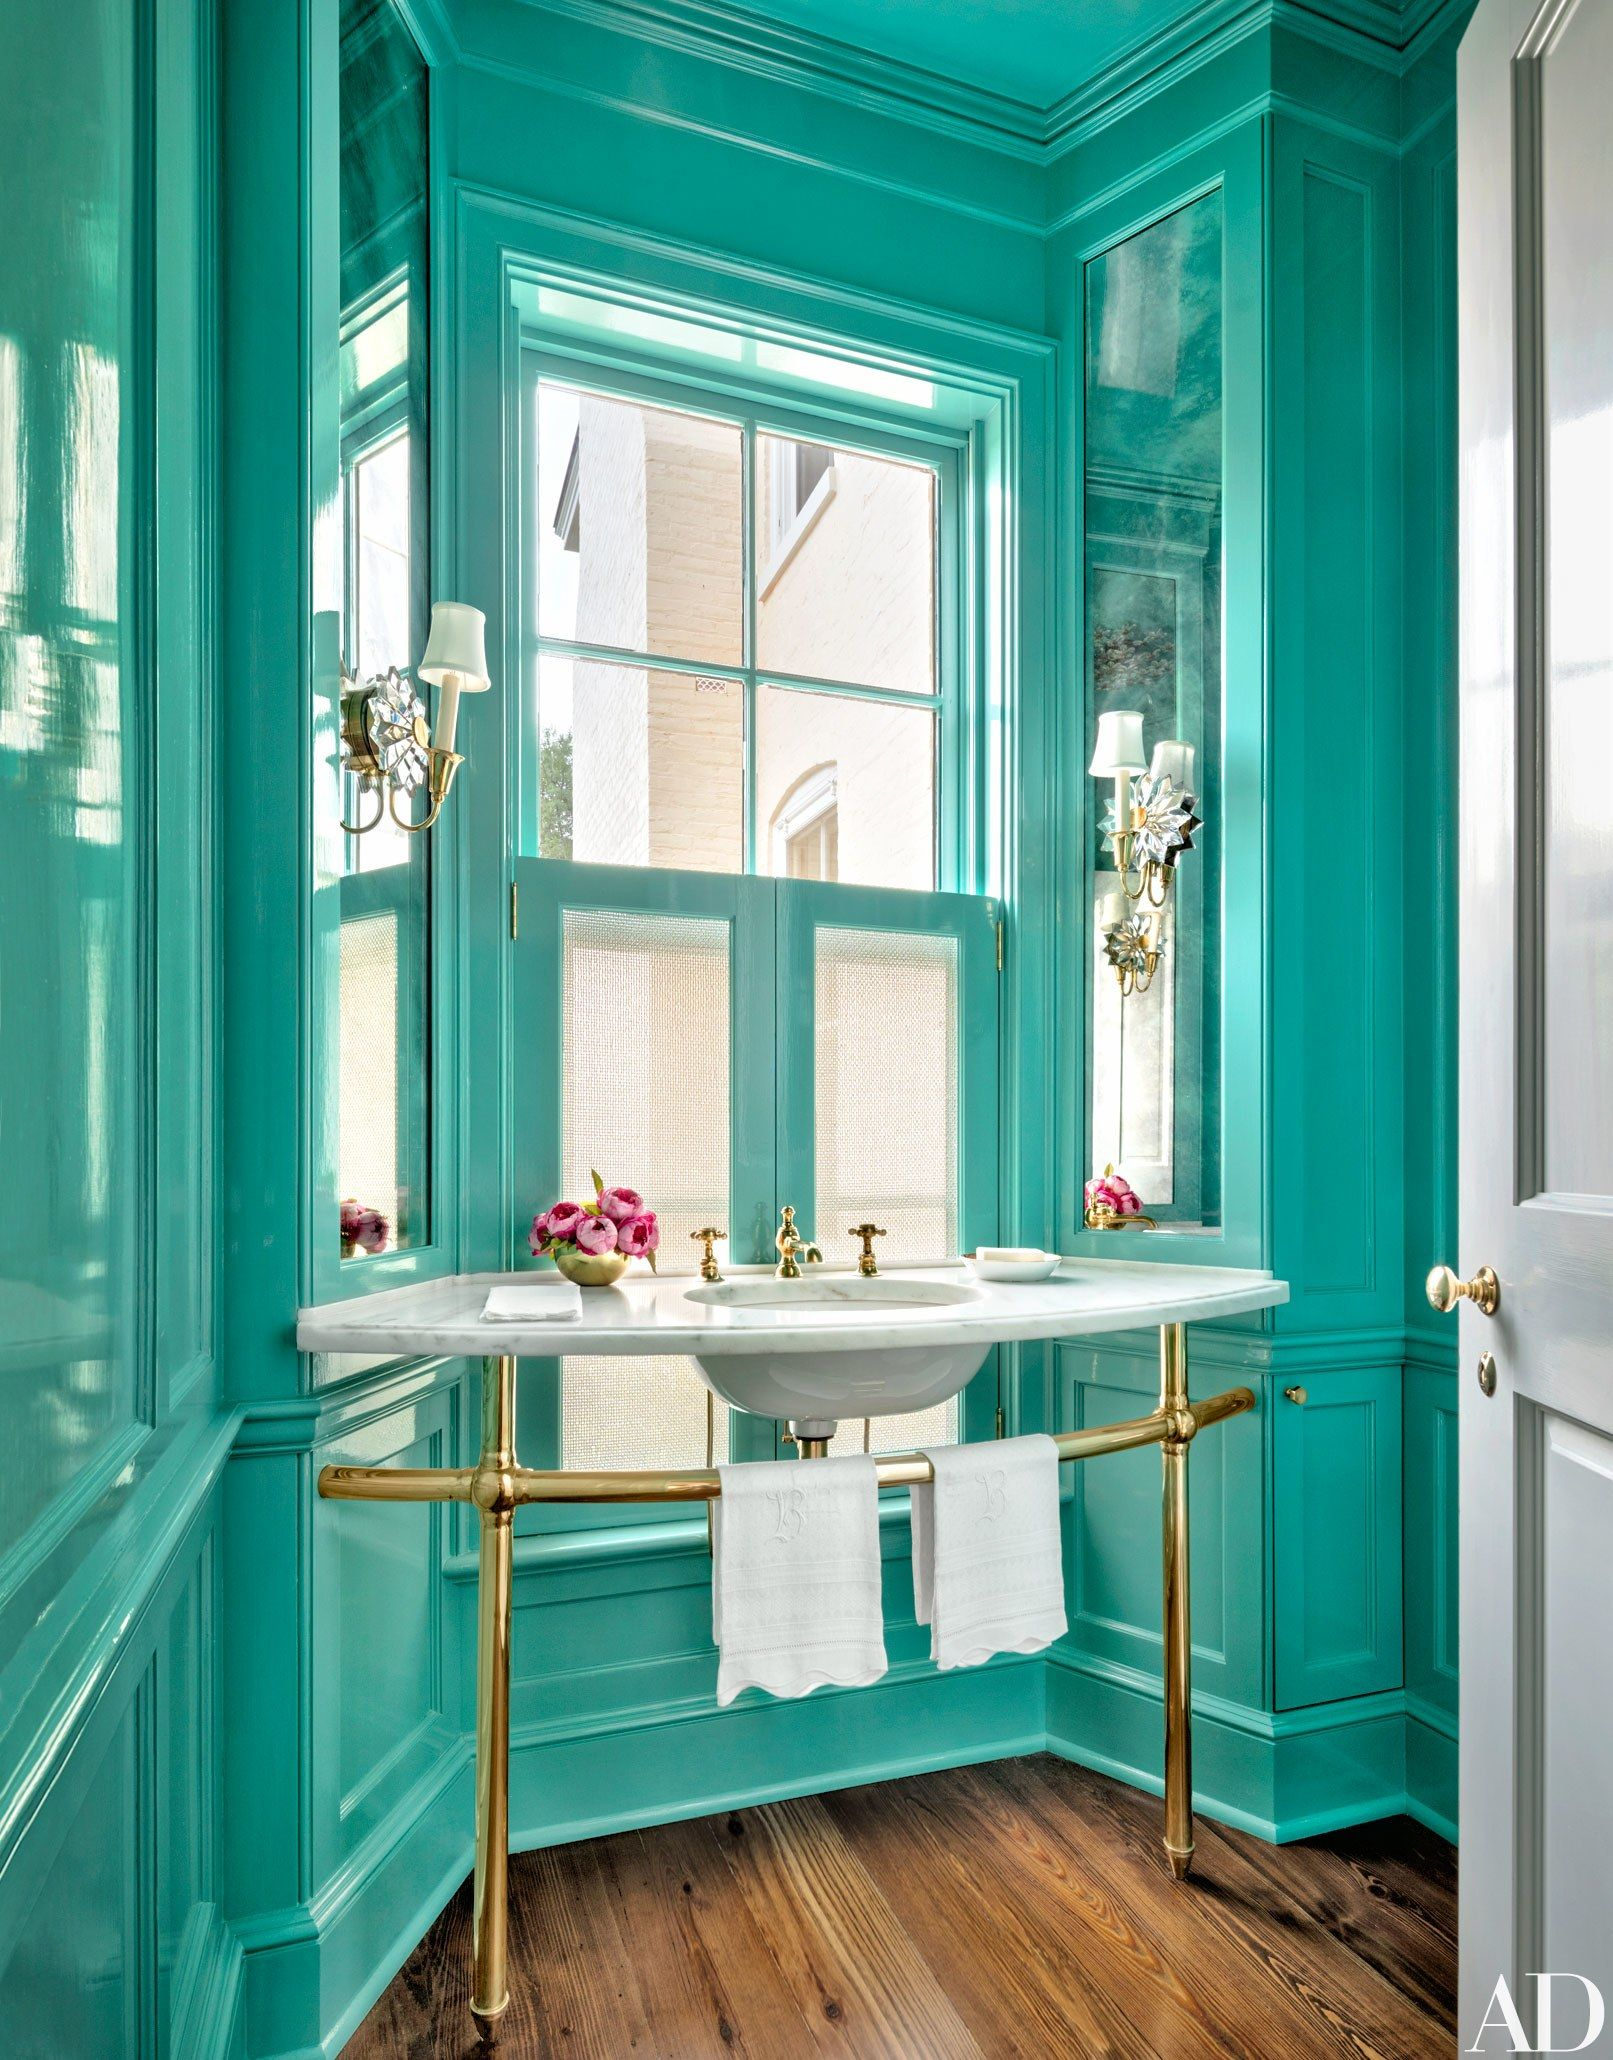 GroBartig Luxus Badezimmer · Türkis · A Powder Room With Turquoise Walls With A  Lacquer Finish And Brass Sink Fittings | Archdigest